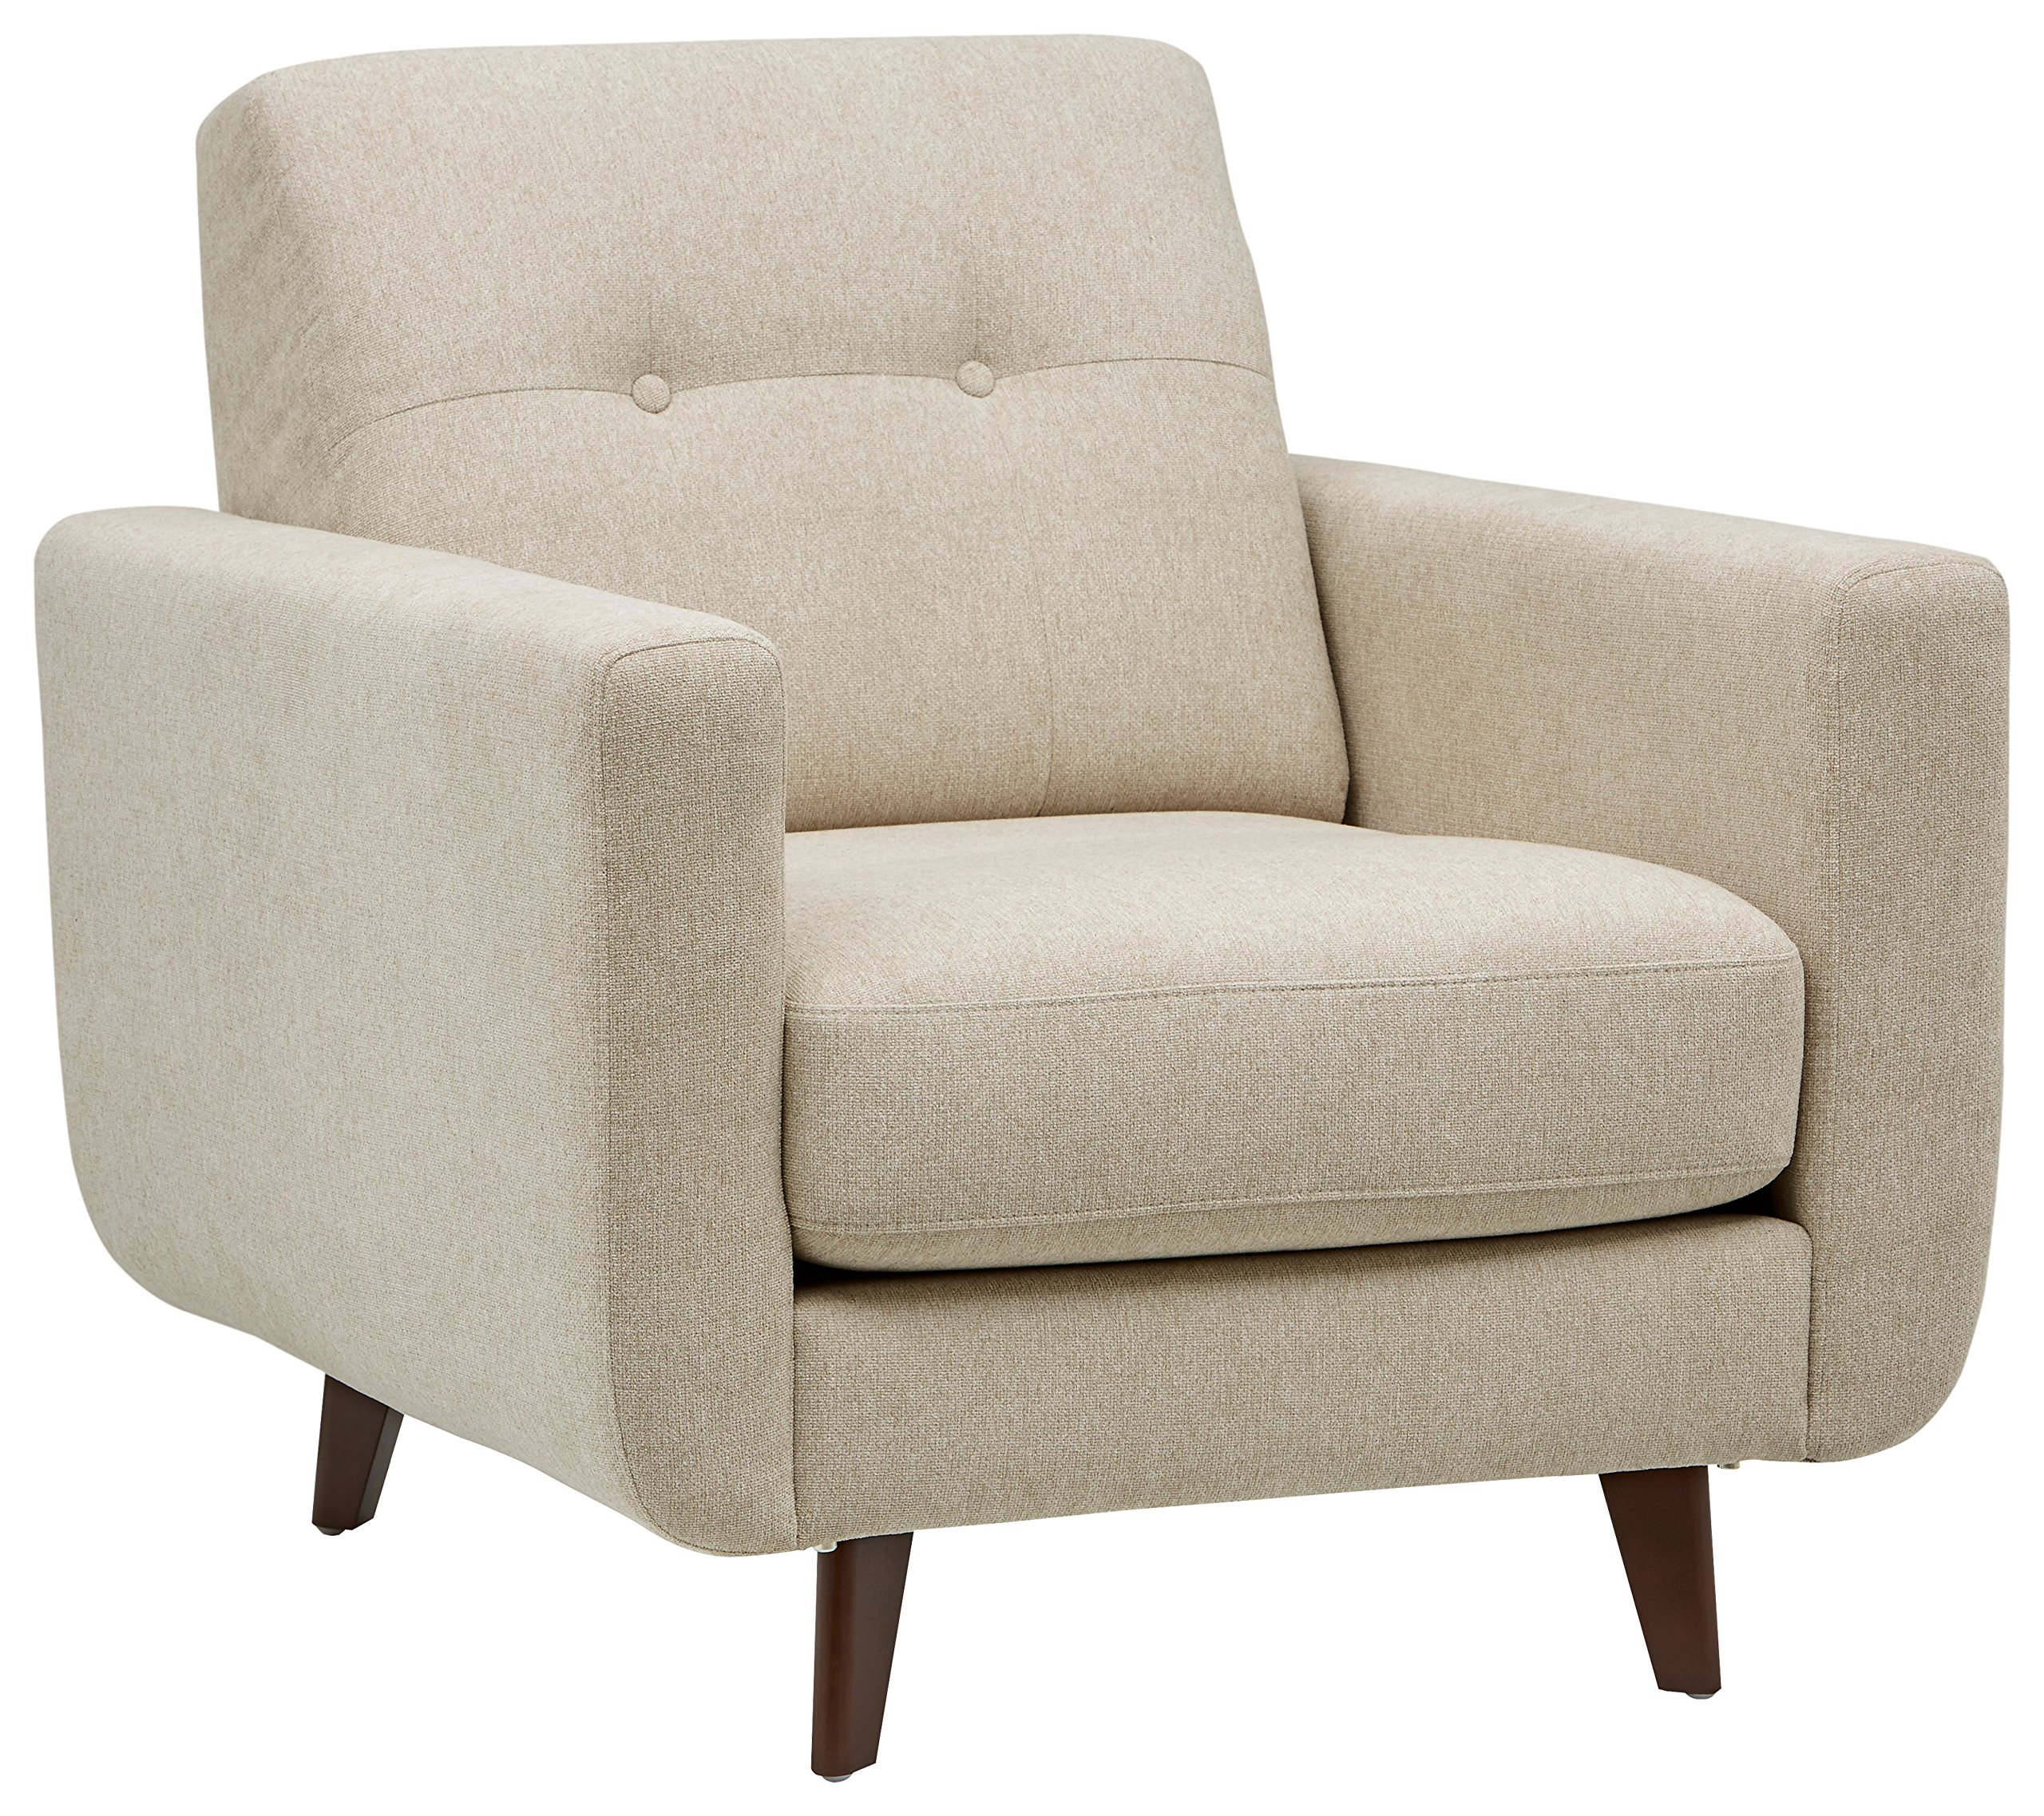 "Amazon Brand – Rivet Sloane Mid-Century Modern Armchair with Tapered Legs, 32.7""W, Shell - Impress your friends with this mid-century modern style. The u-shaped, curved silhouette of this chair, accented by hand tufting and buttons on the back pillow, will look smart in your living room or anywhere else a fashionable chair is needed. 32.7""W x 35.8''D x 33.1''H Hardwood frame with solid beech wood legs - living-room-furniture, living-room, accent-chairs - A19NYyUfucL -"